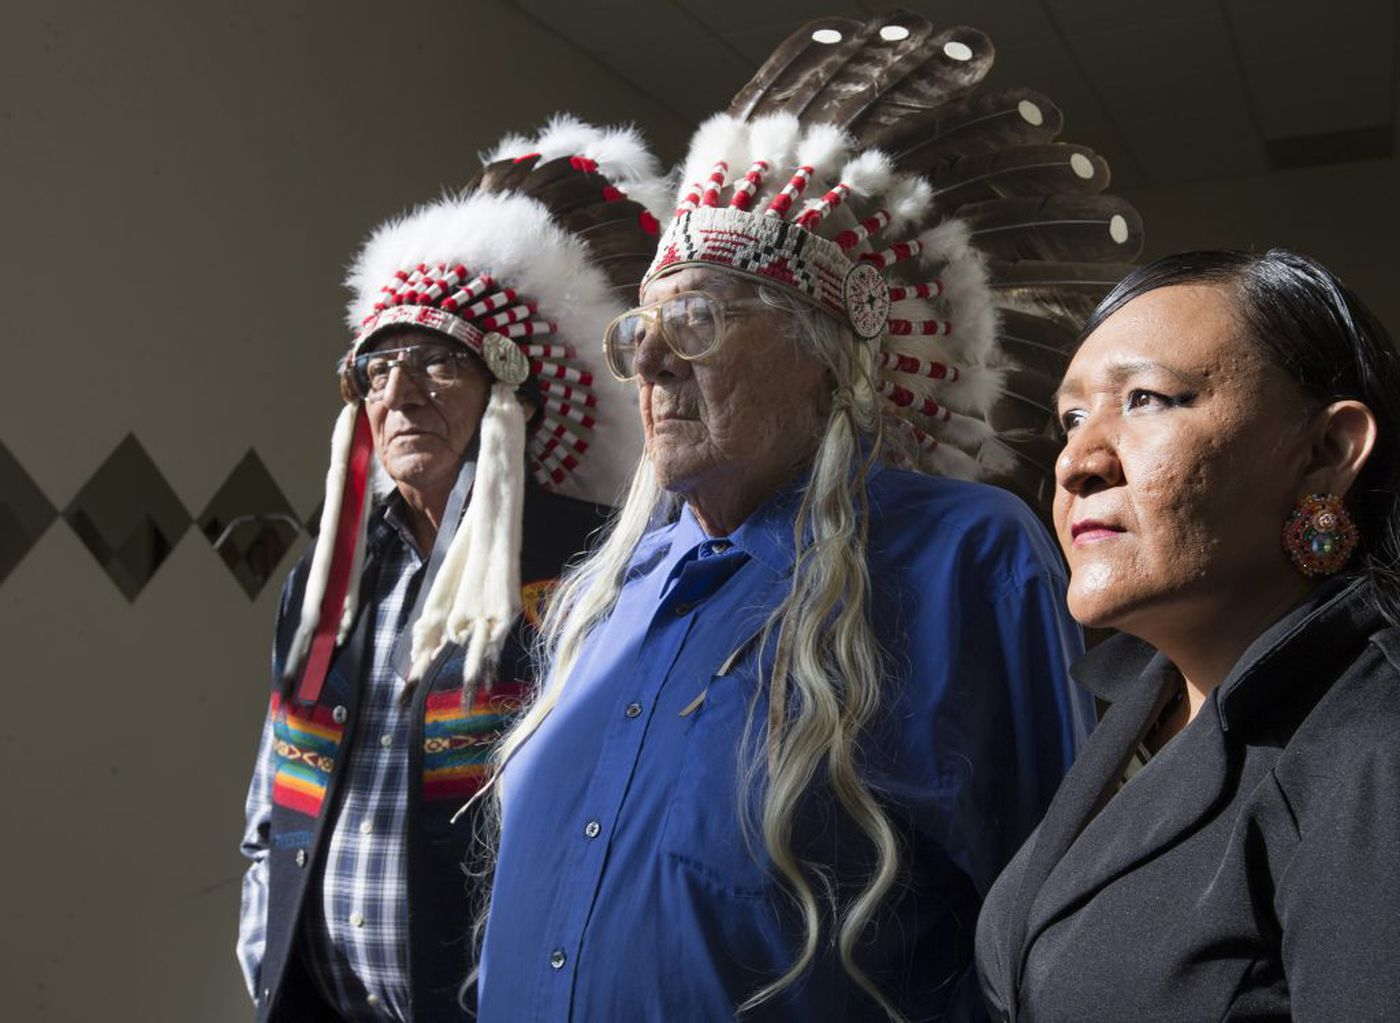 Little Chief, other native children to finally go home